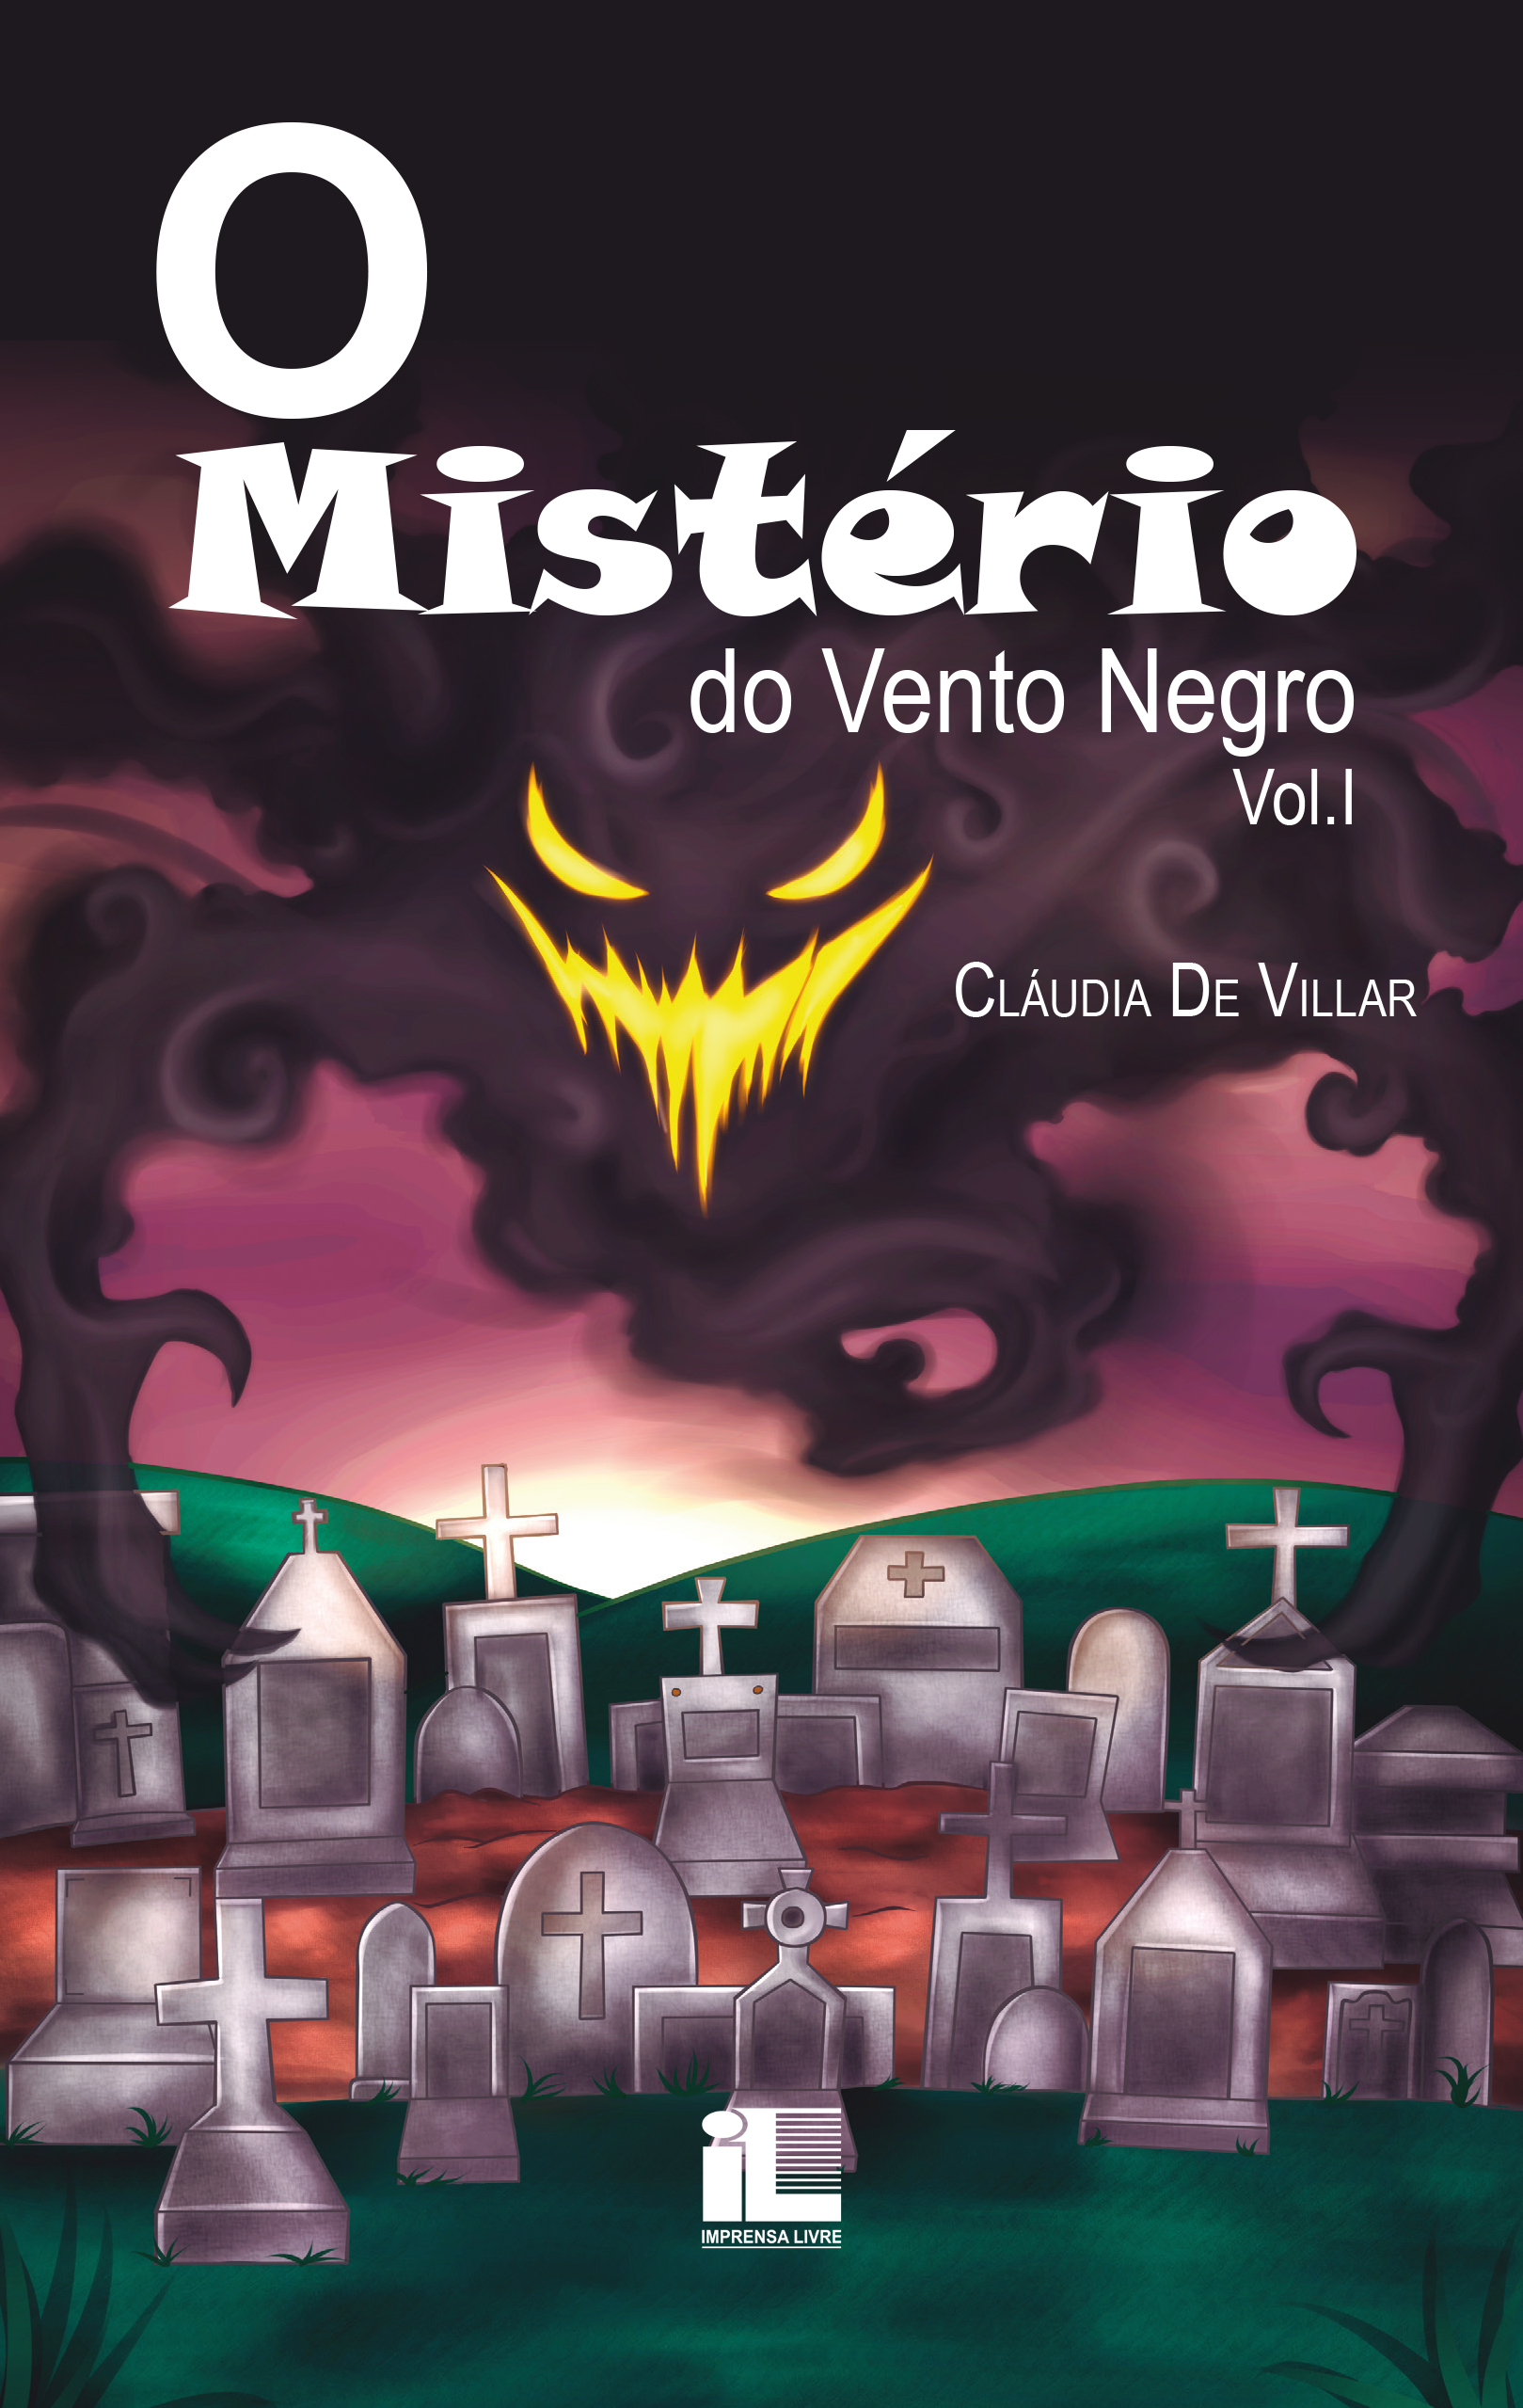 O Mistério do Vento Negro, vol. I